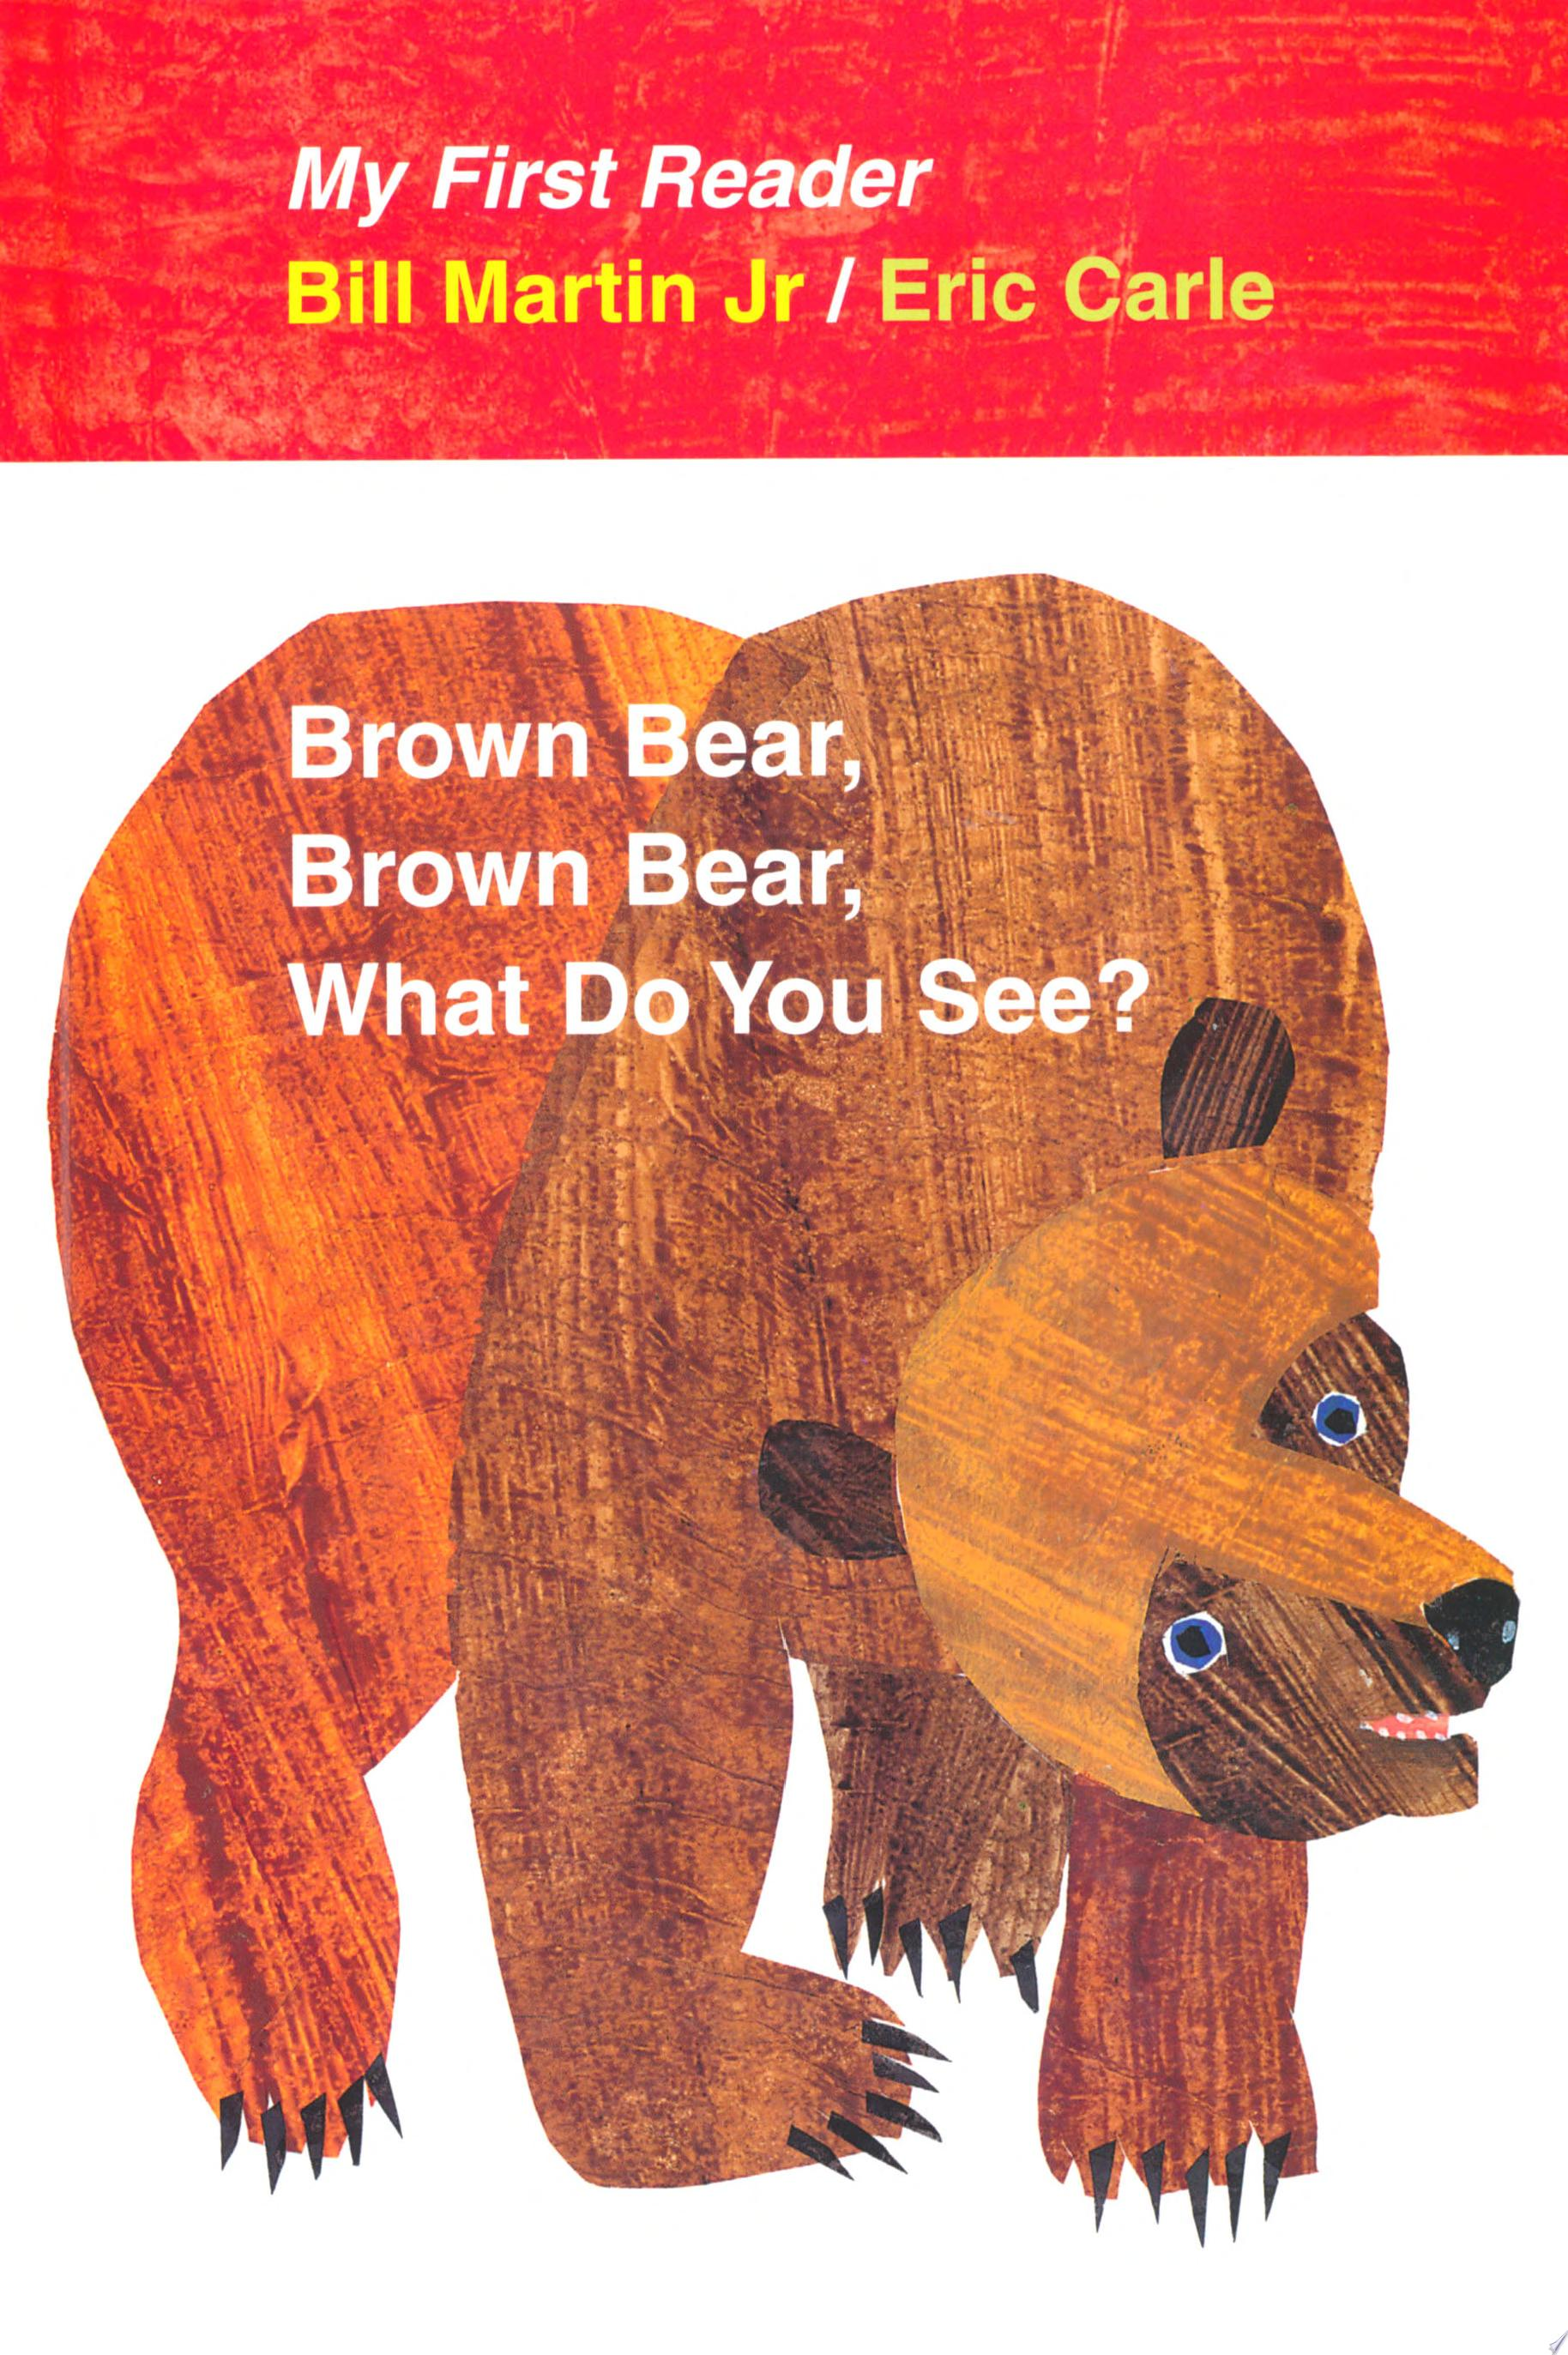 Brown Bear  Brown Bear  What Do You See  My First Reader